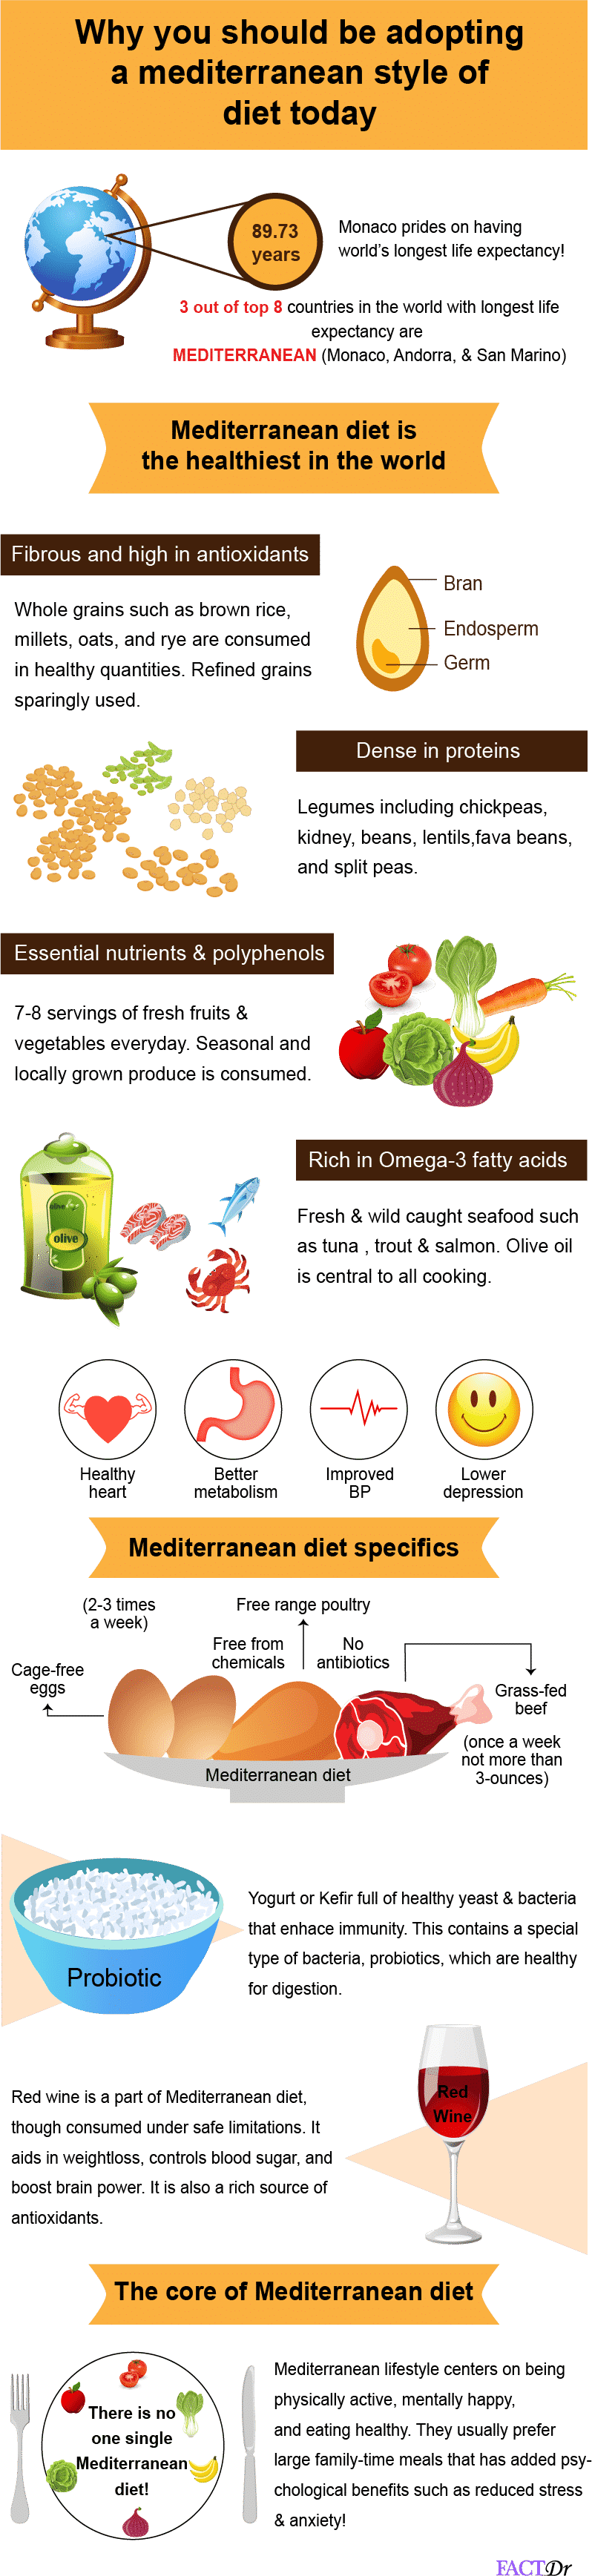 Why you should be adopting a Mediterranean style of diet today